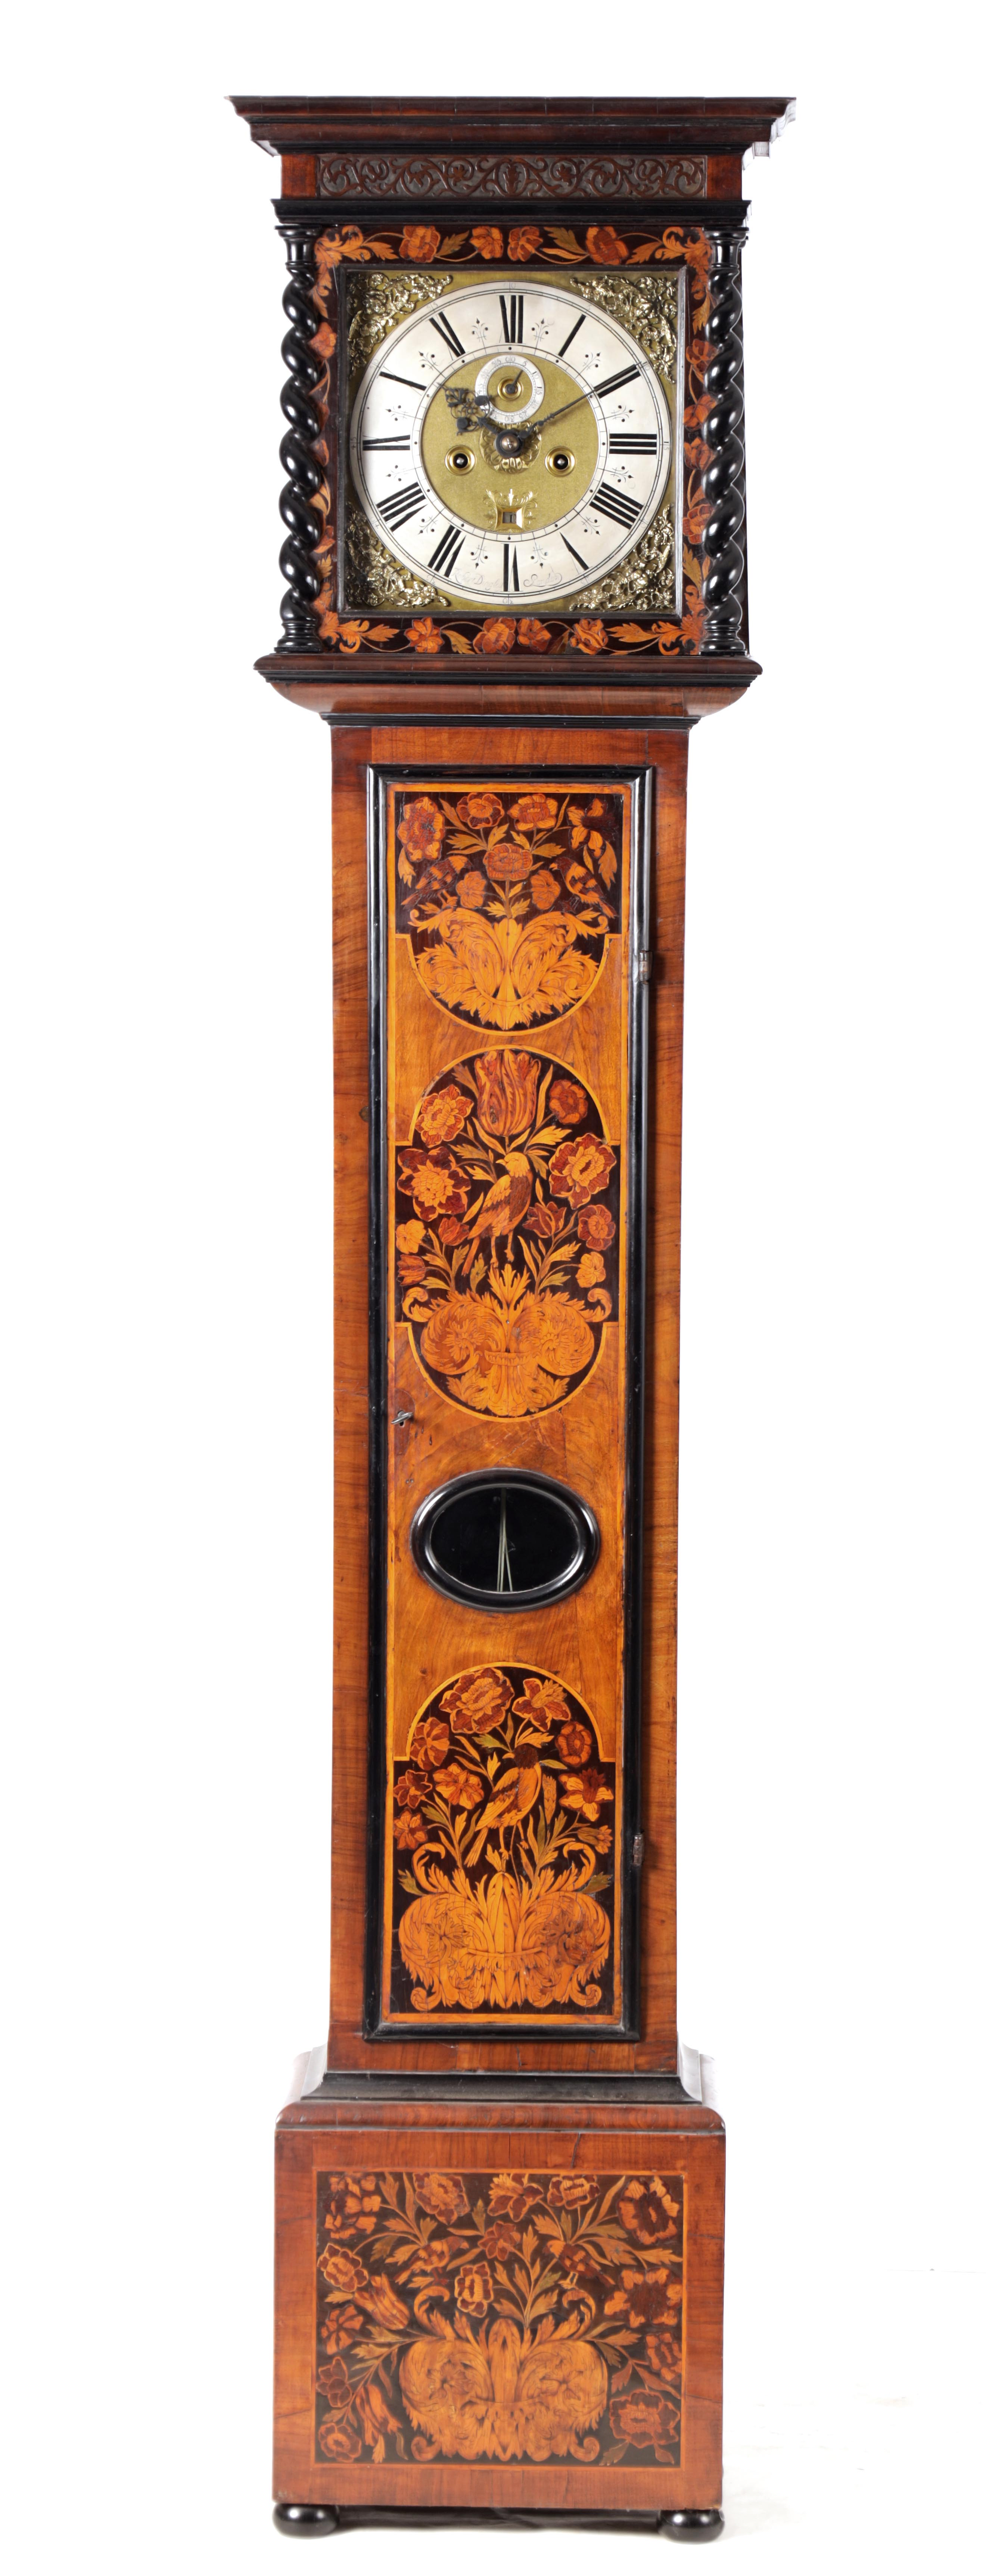 """ROBERT DINGLY, LONDON A LATE 17TH CENTURY 11"""" MARQUETRY INLAID WALNUT LONGCASE CLOCK the hood with"""